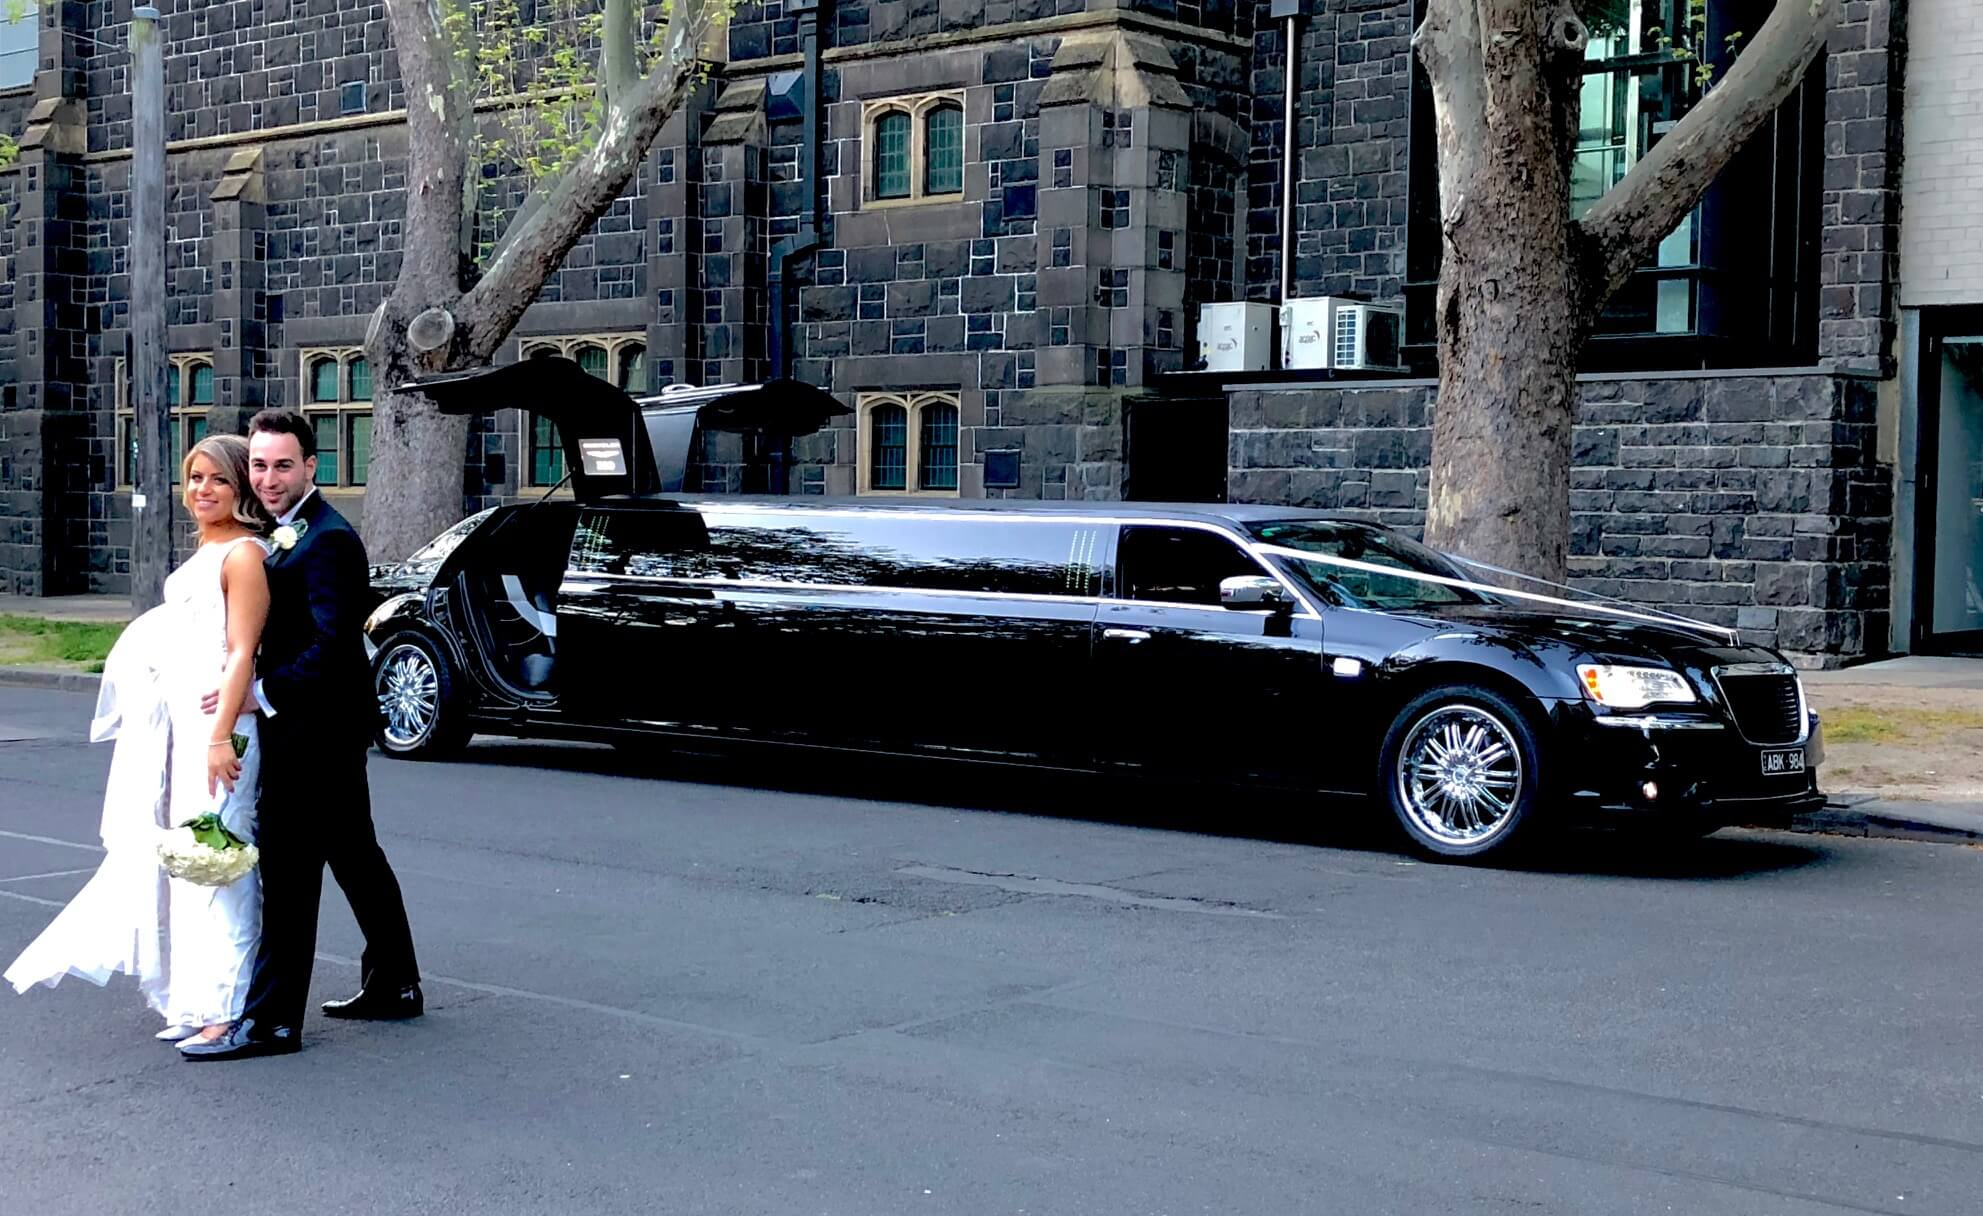 Stretch Black Chrysler luxury Wedding limousine hire